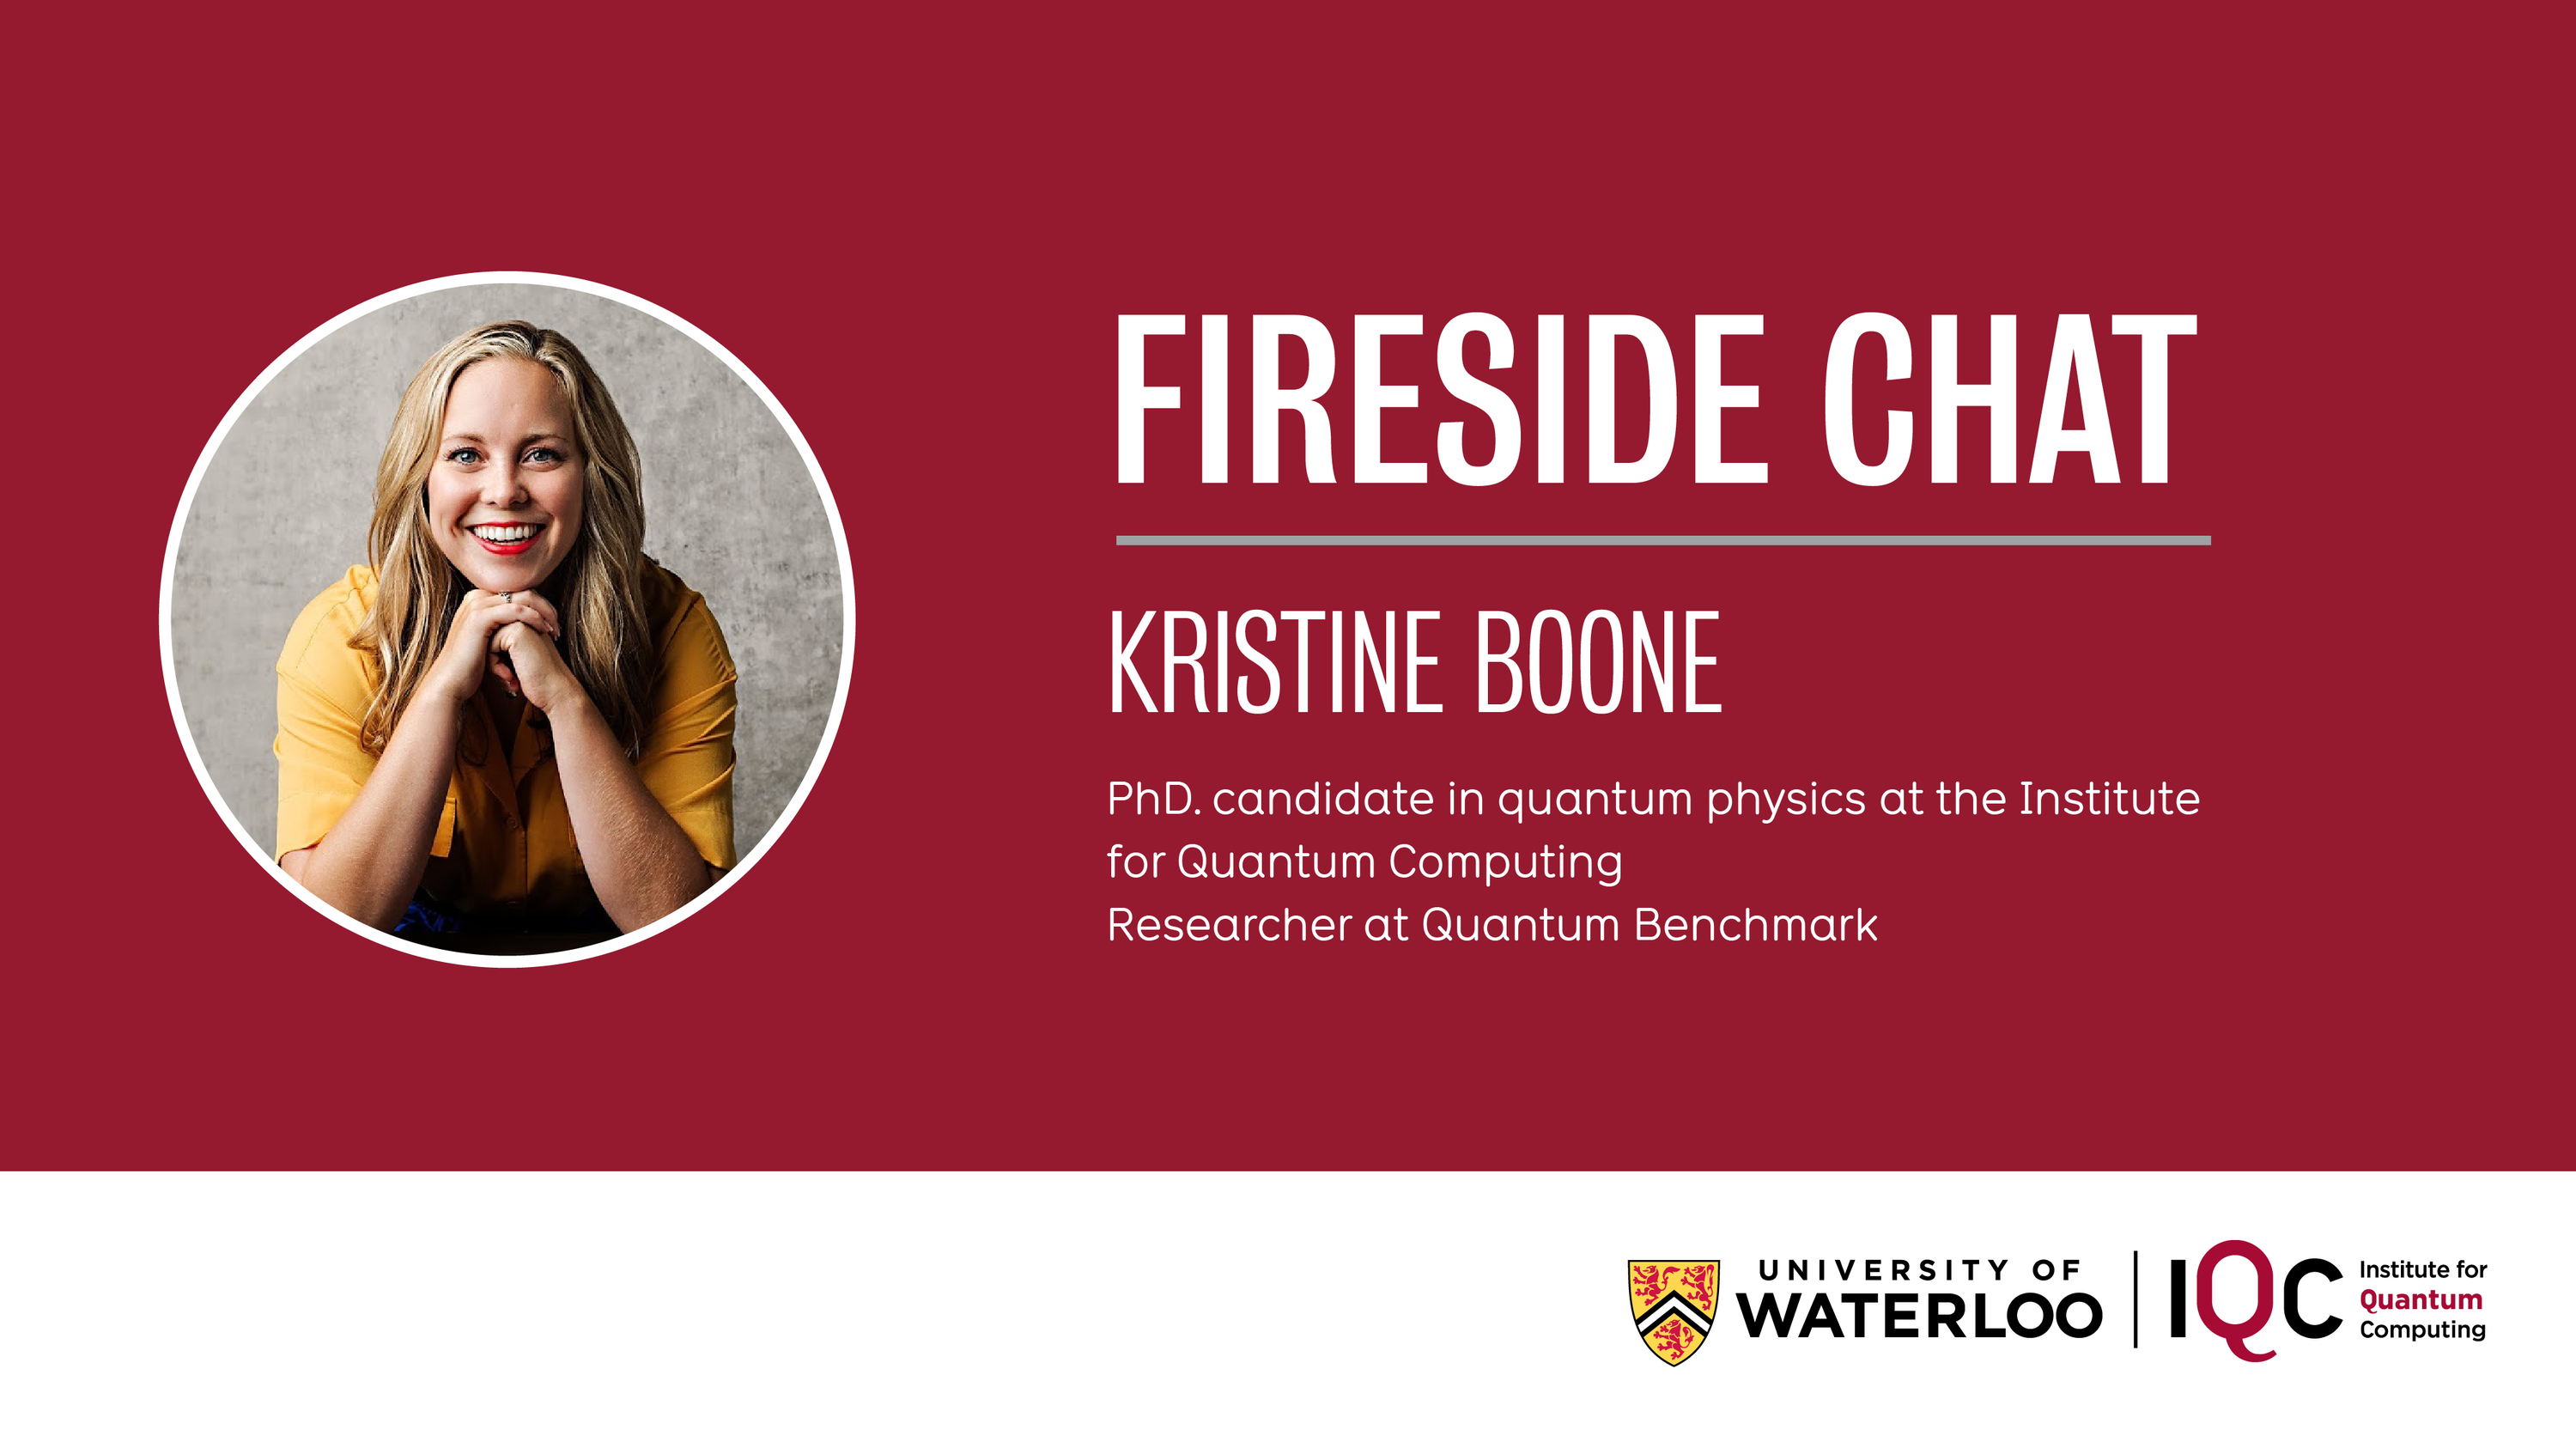 Kristine Boone, PhD candidate Fireside chat